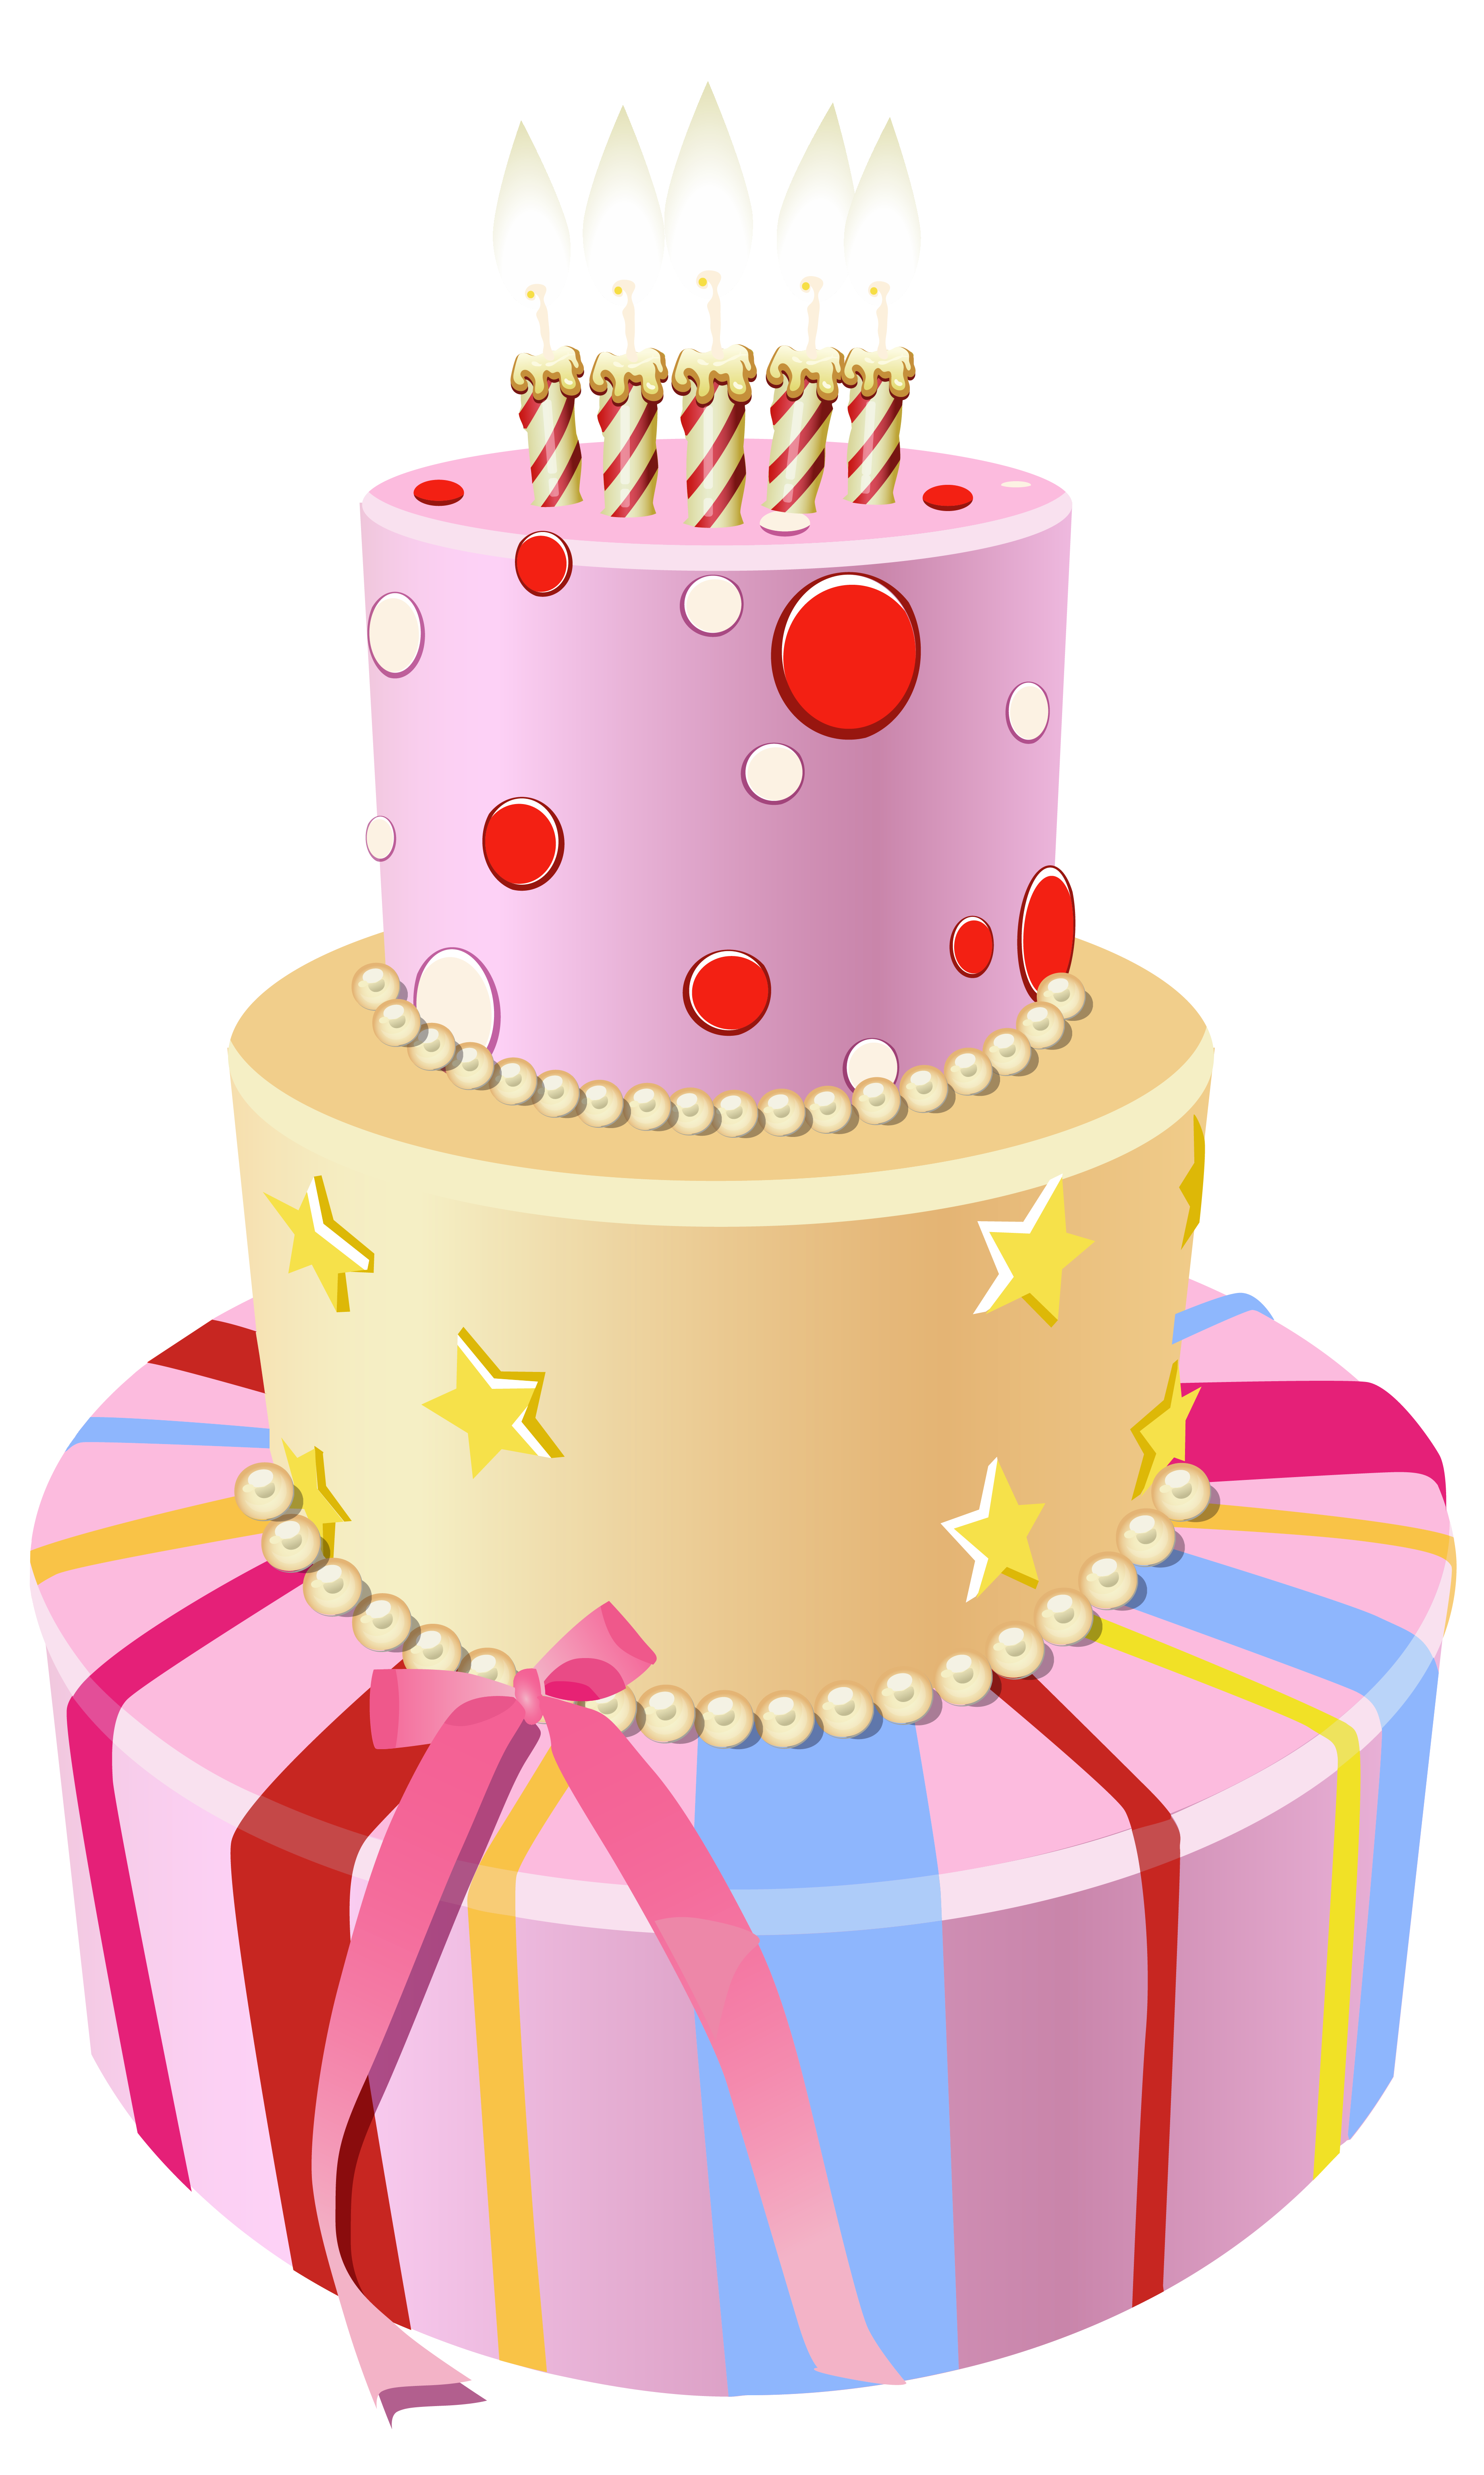 Clipart border cake. Birthday pink image collections